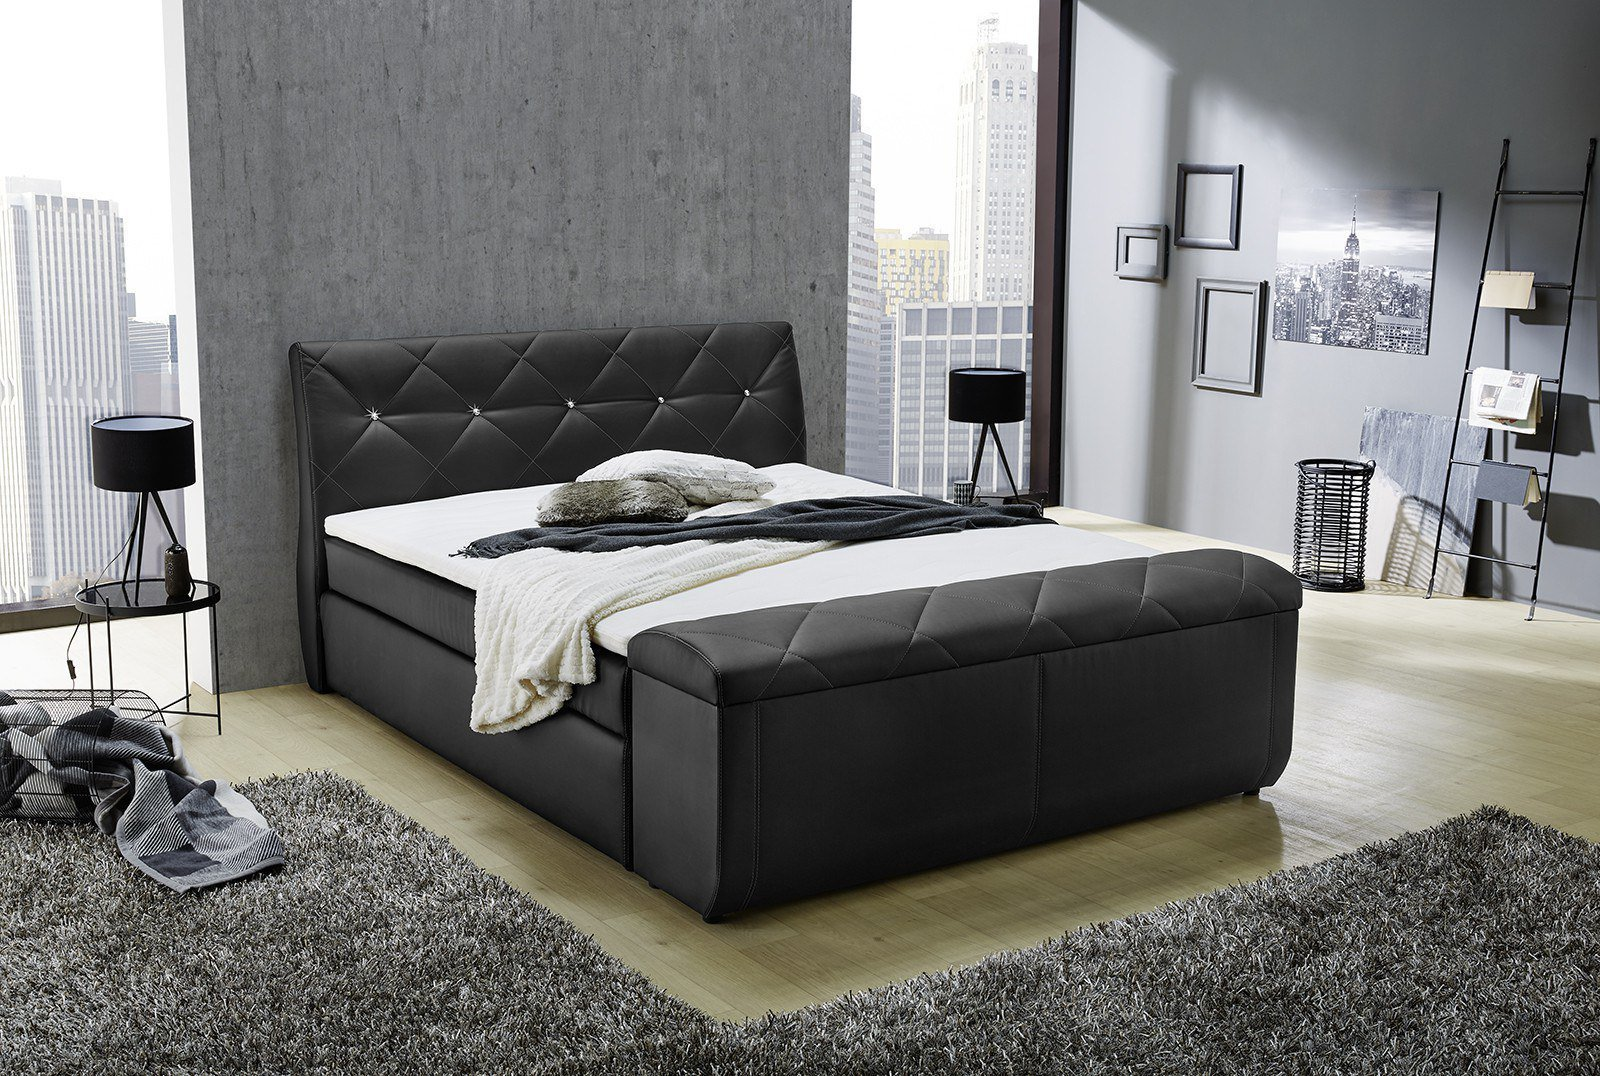 jockenh fer boxspringbett sementha sarah mit glitzersteinapplikation m bel letz ihr online. Black Bedroom Furniture Sets. Home Design Ideas